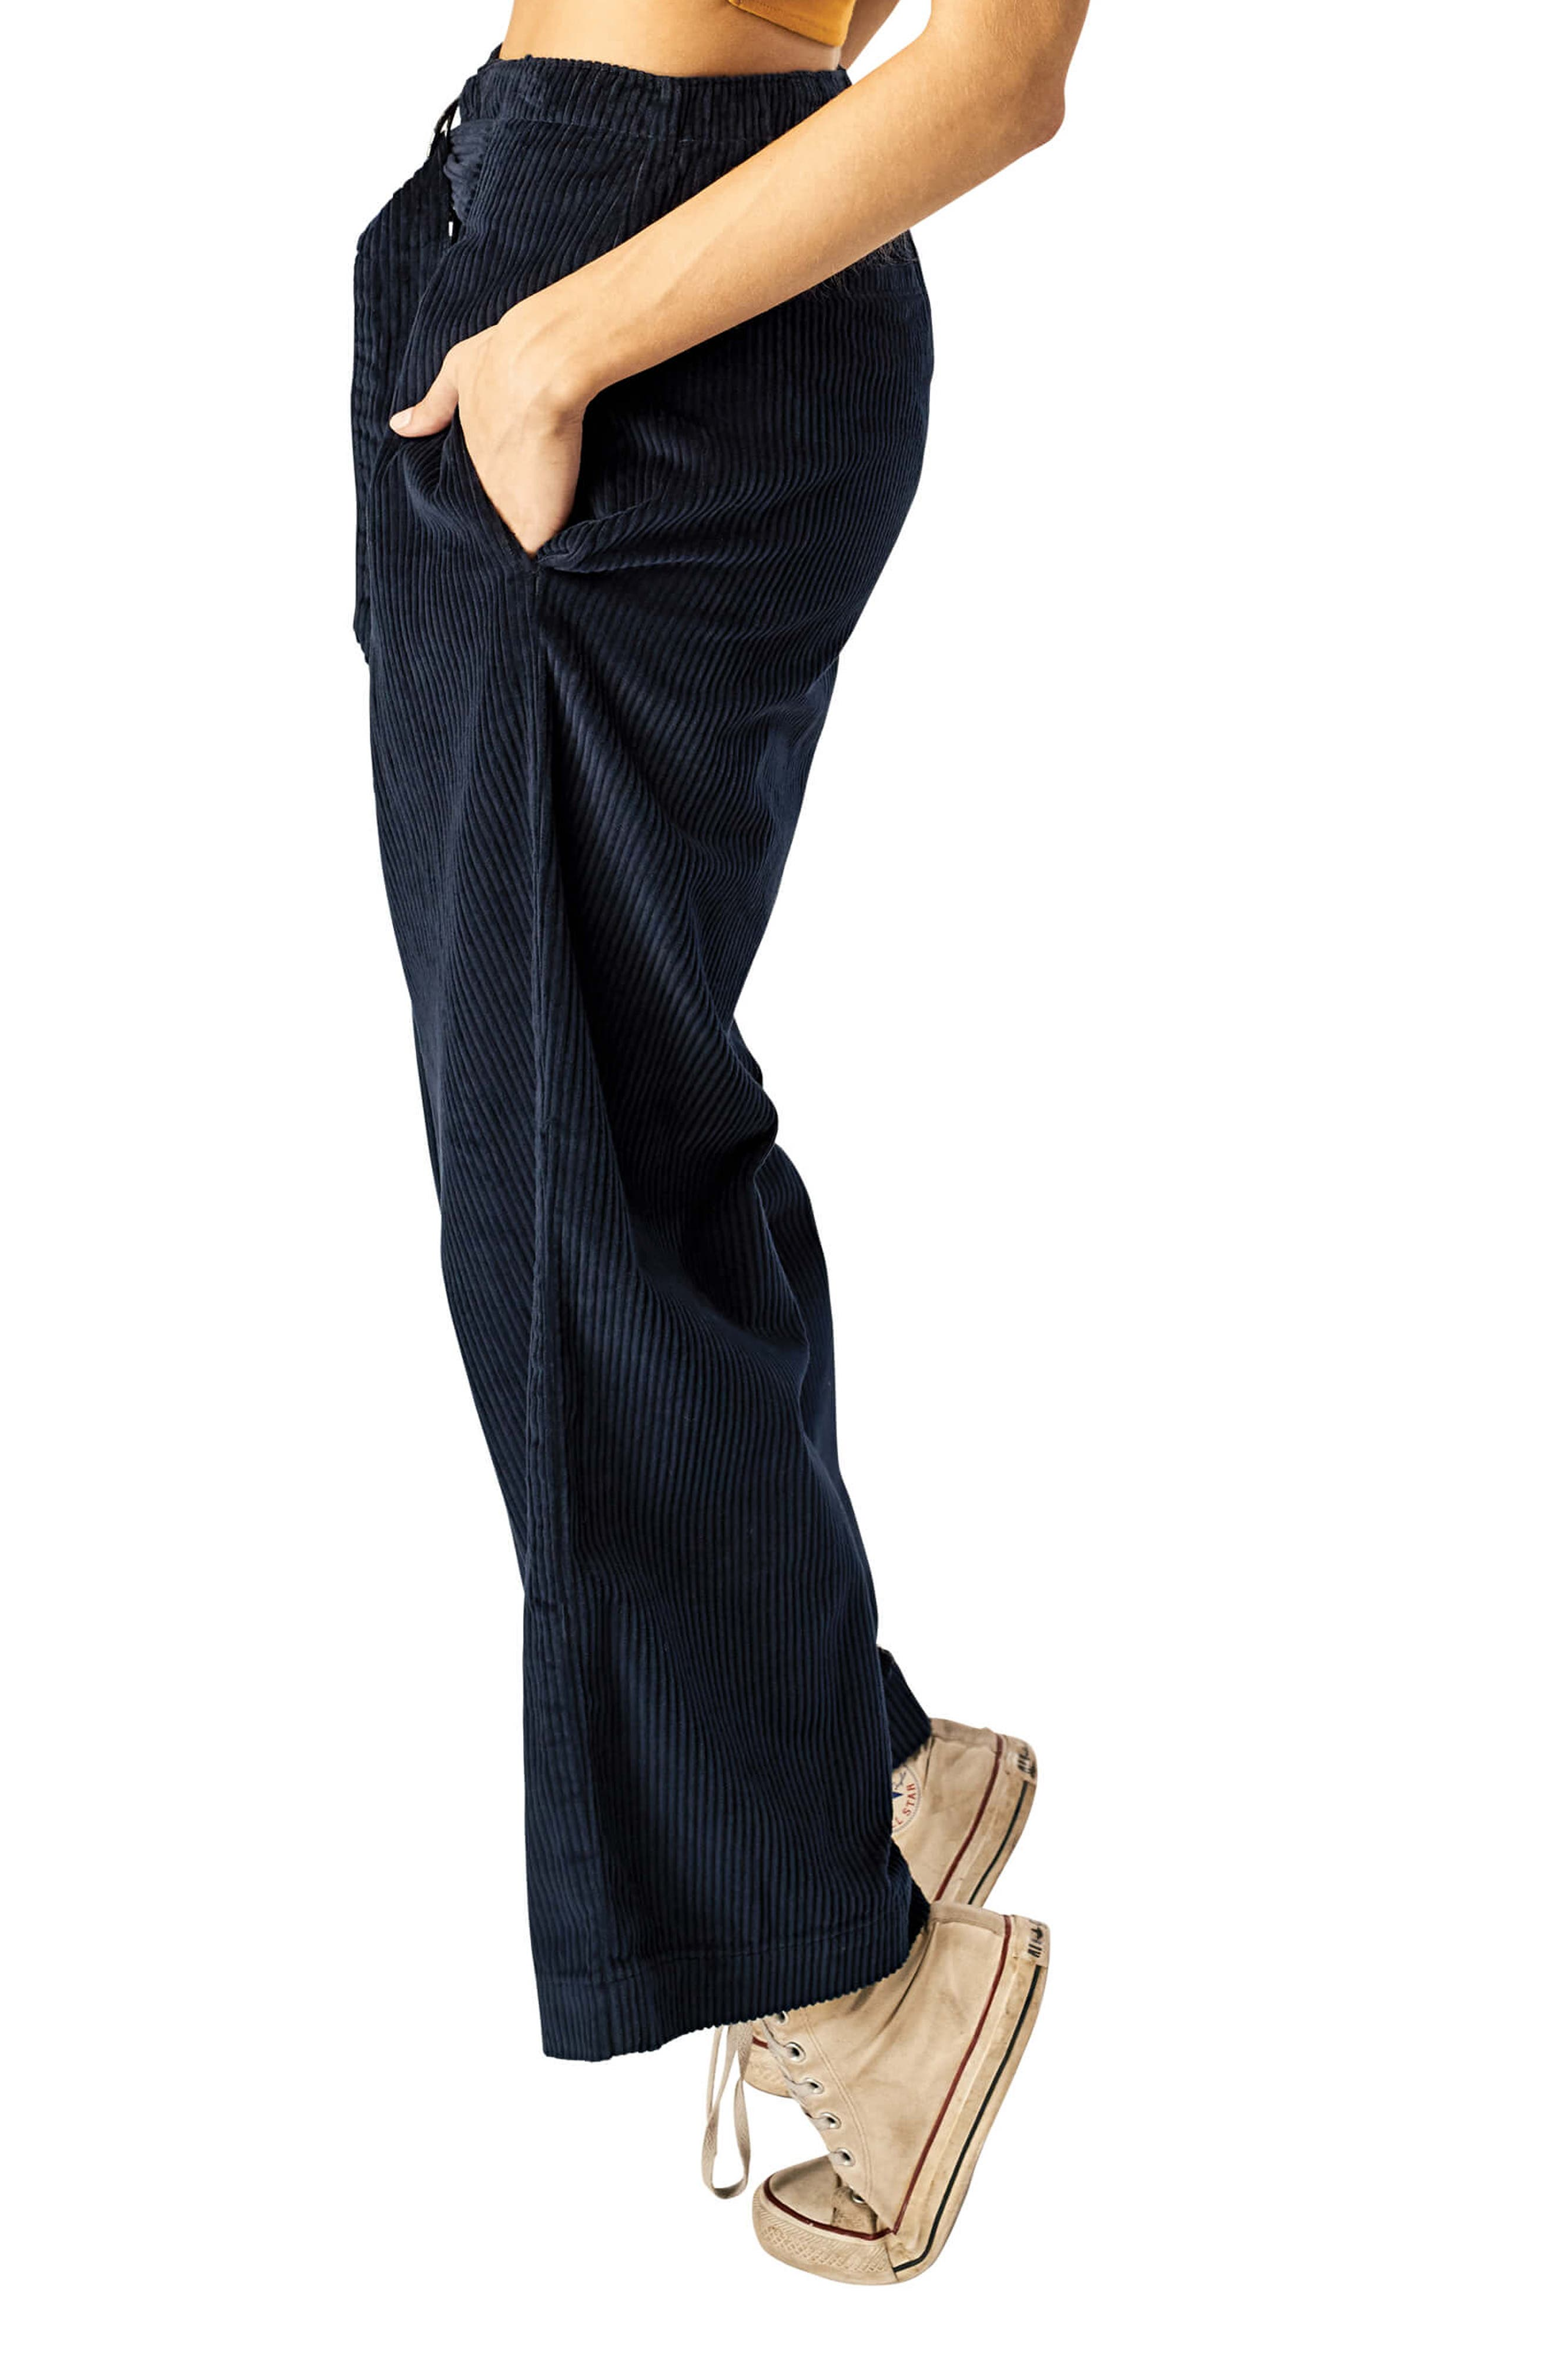 STONE ROW,                             Cut the Cord Corduroy Ankle Wide Leg Pants,                             Alternate thumbnail 3, color,                             SEA NAVY